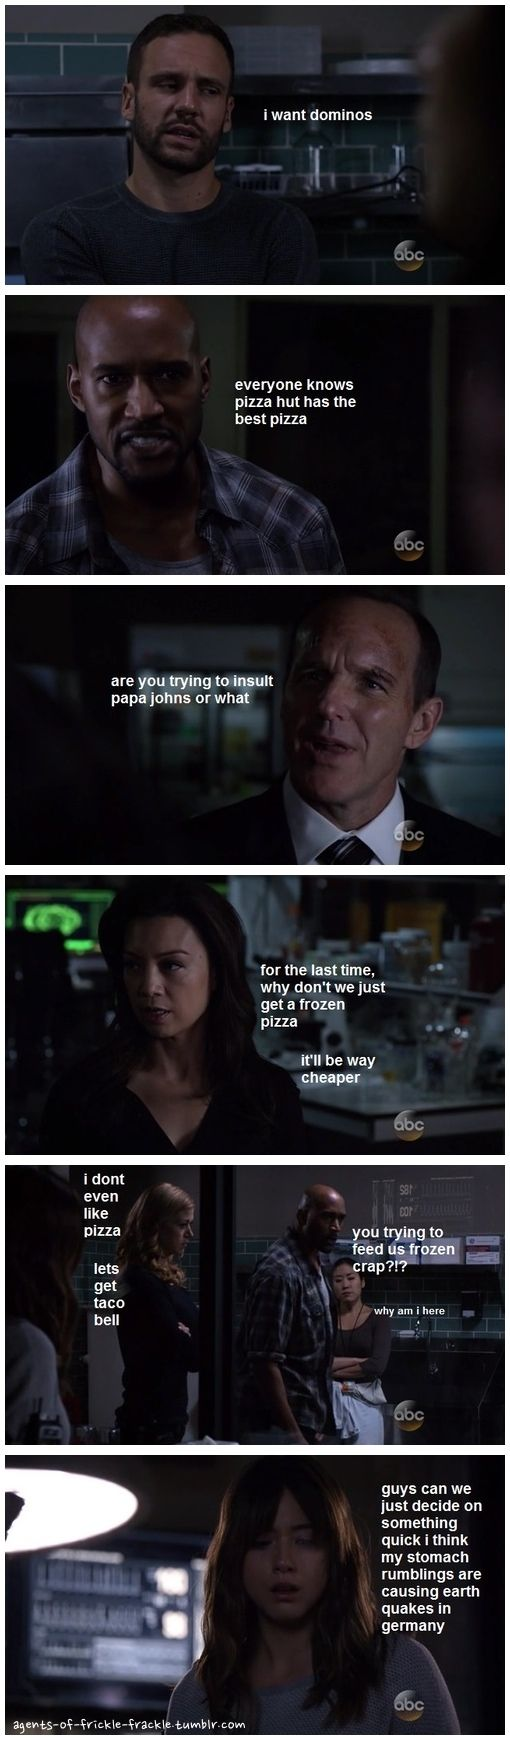 the family fight || Lance Hunter, Alphonso Mackenzie, Phil Coulson, Melinda May, Bobbi Morse, Skye || Agents of Frickle Frackle 2x11 Recap || #fanedit #humor